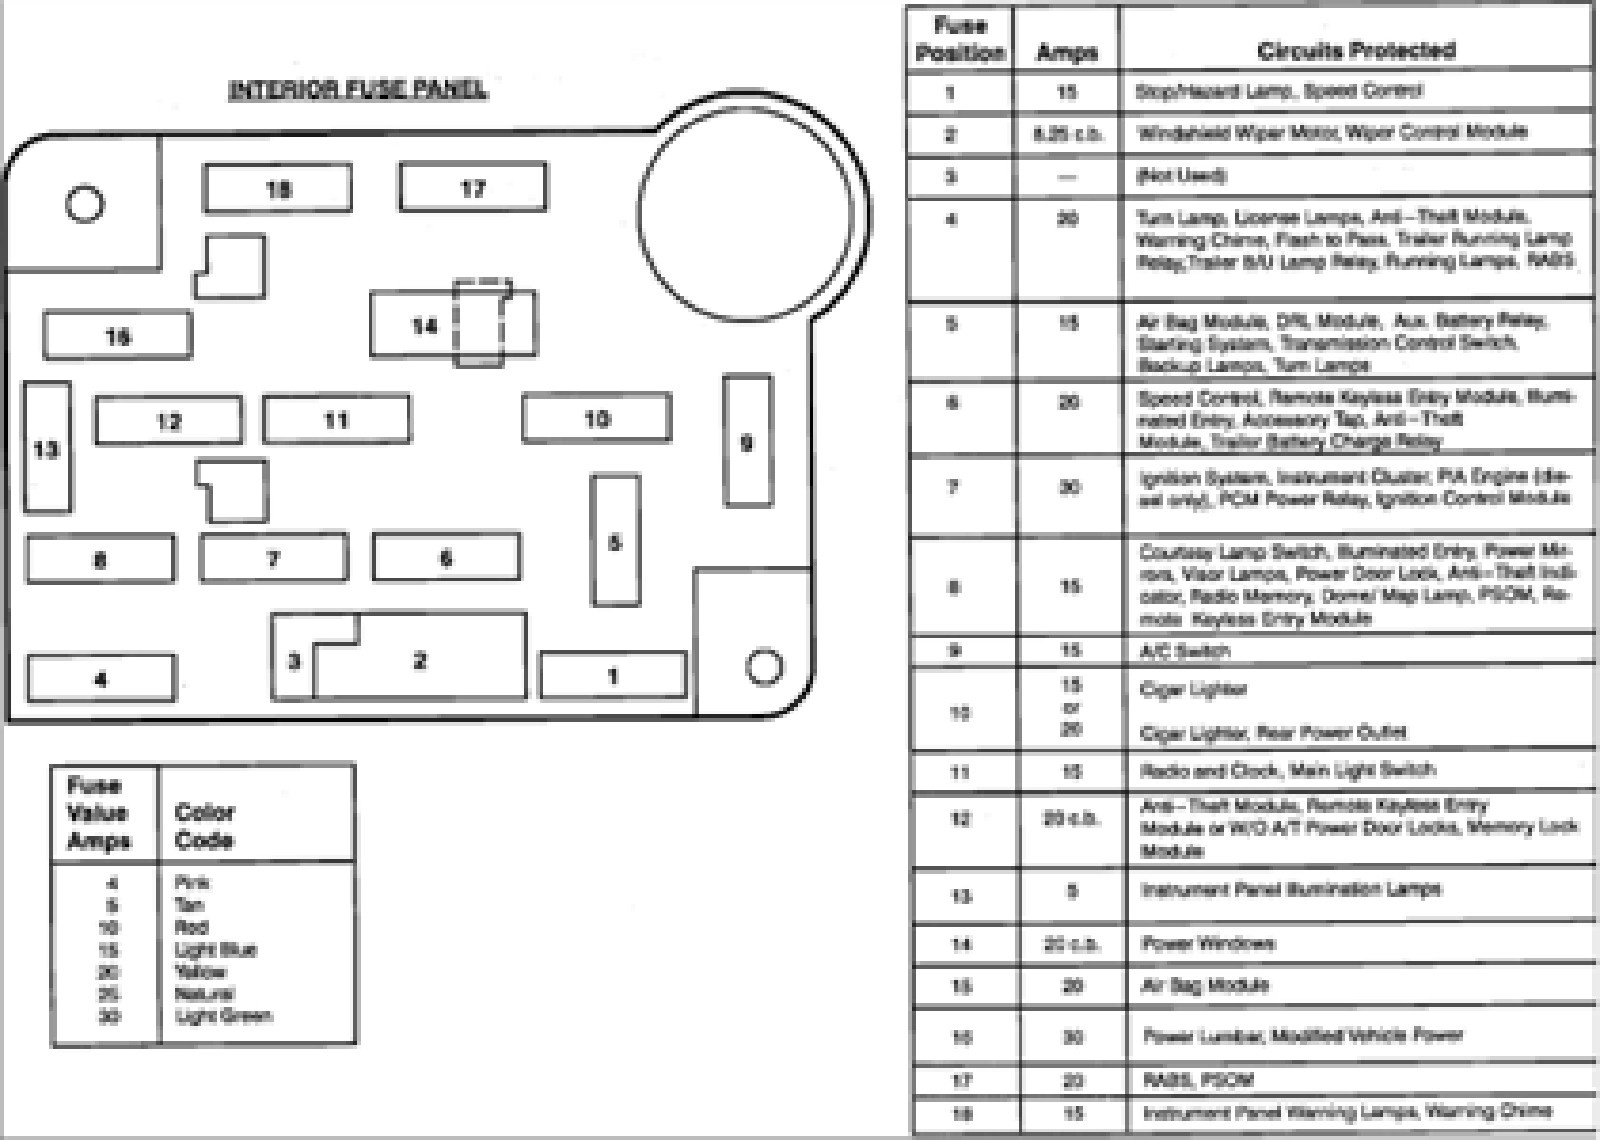 Ford Transit Fuse Box Manual Anything Wiring Diagrams 2009 Focus Location E 150 Questions Diagram For A 1993 Econoline Van Rh Cargurus Com 2001 2006